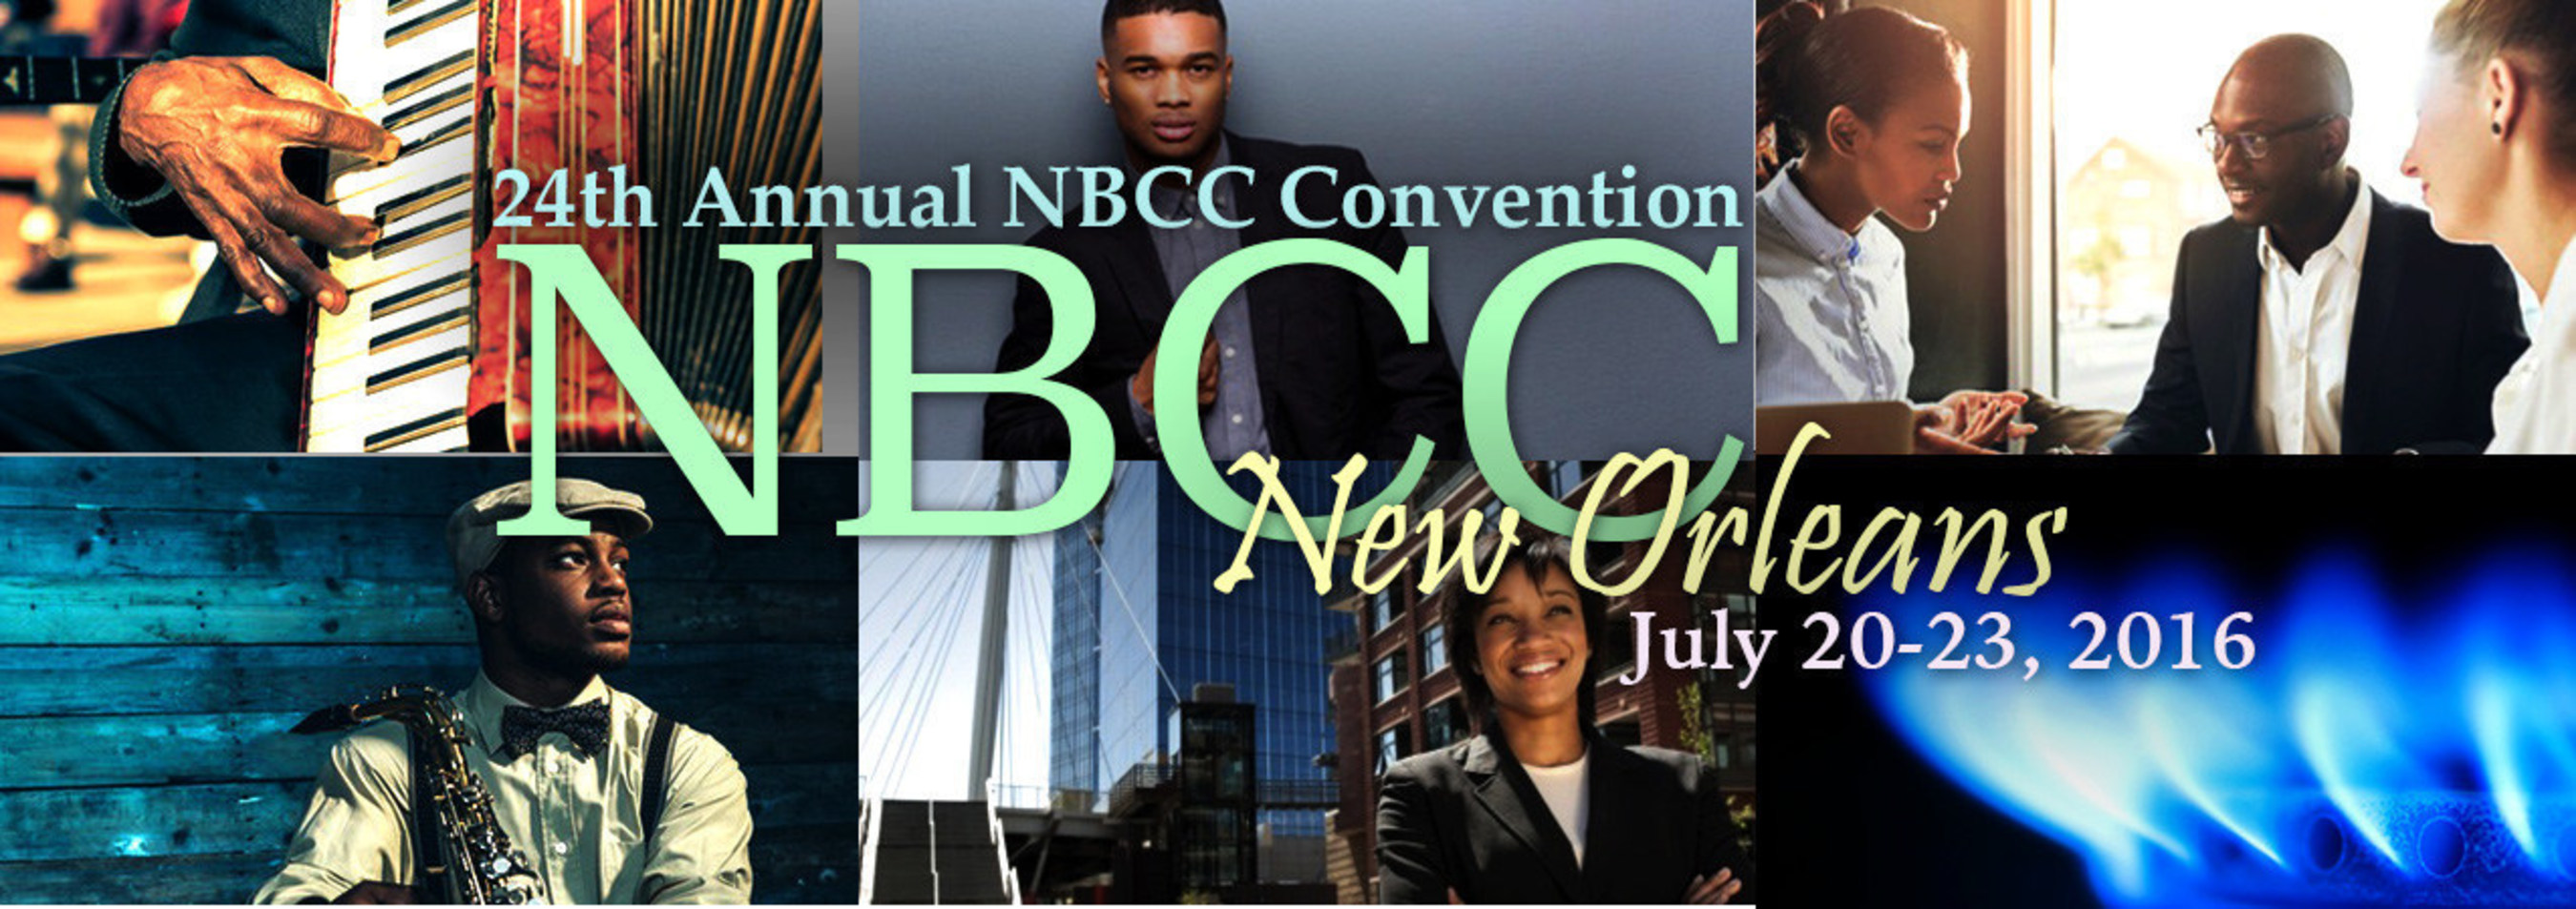 "One of the nation's preeminent business advocacy organization, the National Black Chamber of Commerce announces its 24th Annual Entrepreneurial Convention, set for July 20-23, 2016, in New Orleans, Louisiana. Focused on Empowering Business Leaders for Maximum Success.  ""By being a trailblazer in the proliferation of business policy, innovation, technology, black business development and critical convening, we are delighted to engage influential business and world leaders who have chosen to make our Conference a must attend event every summer, in July,"" said Harry C. Alford, president/CEO, NBCC.  Go to NBCCTODAY2016.org to register or find more information."